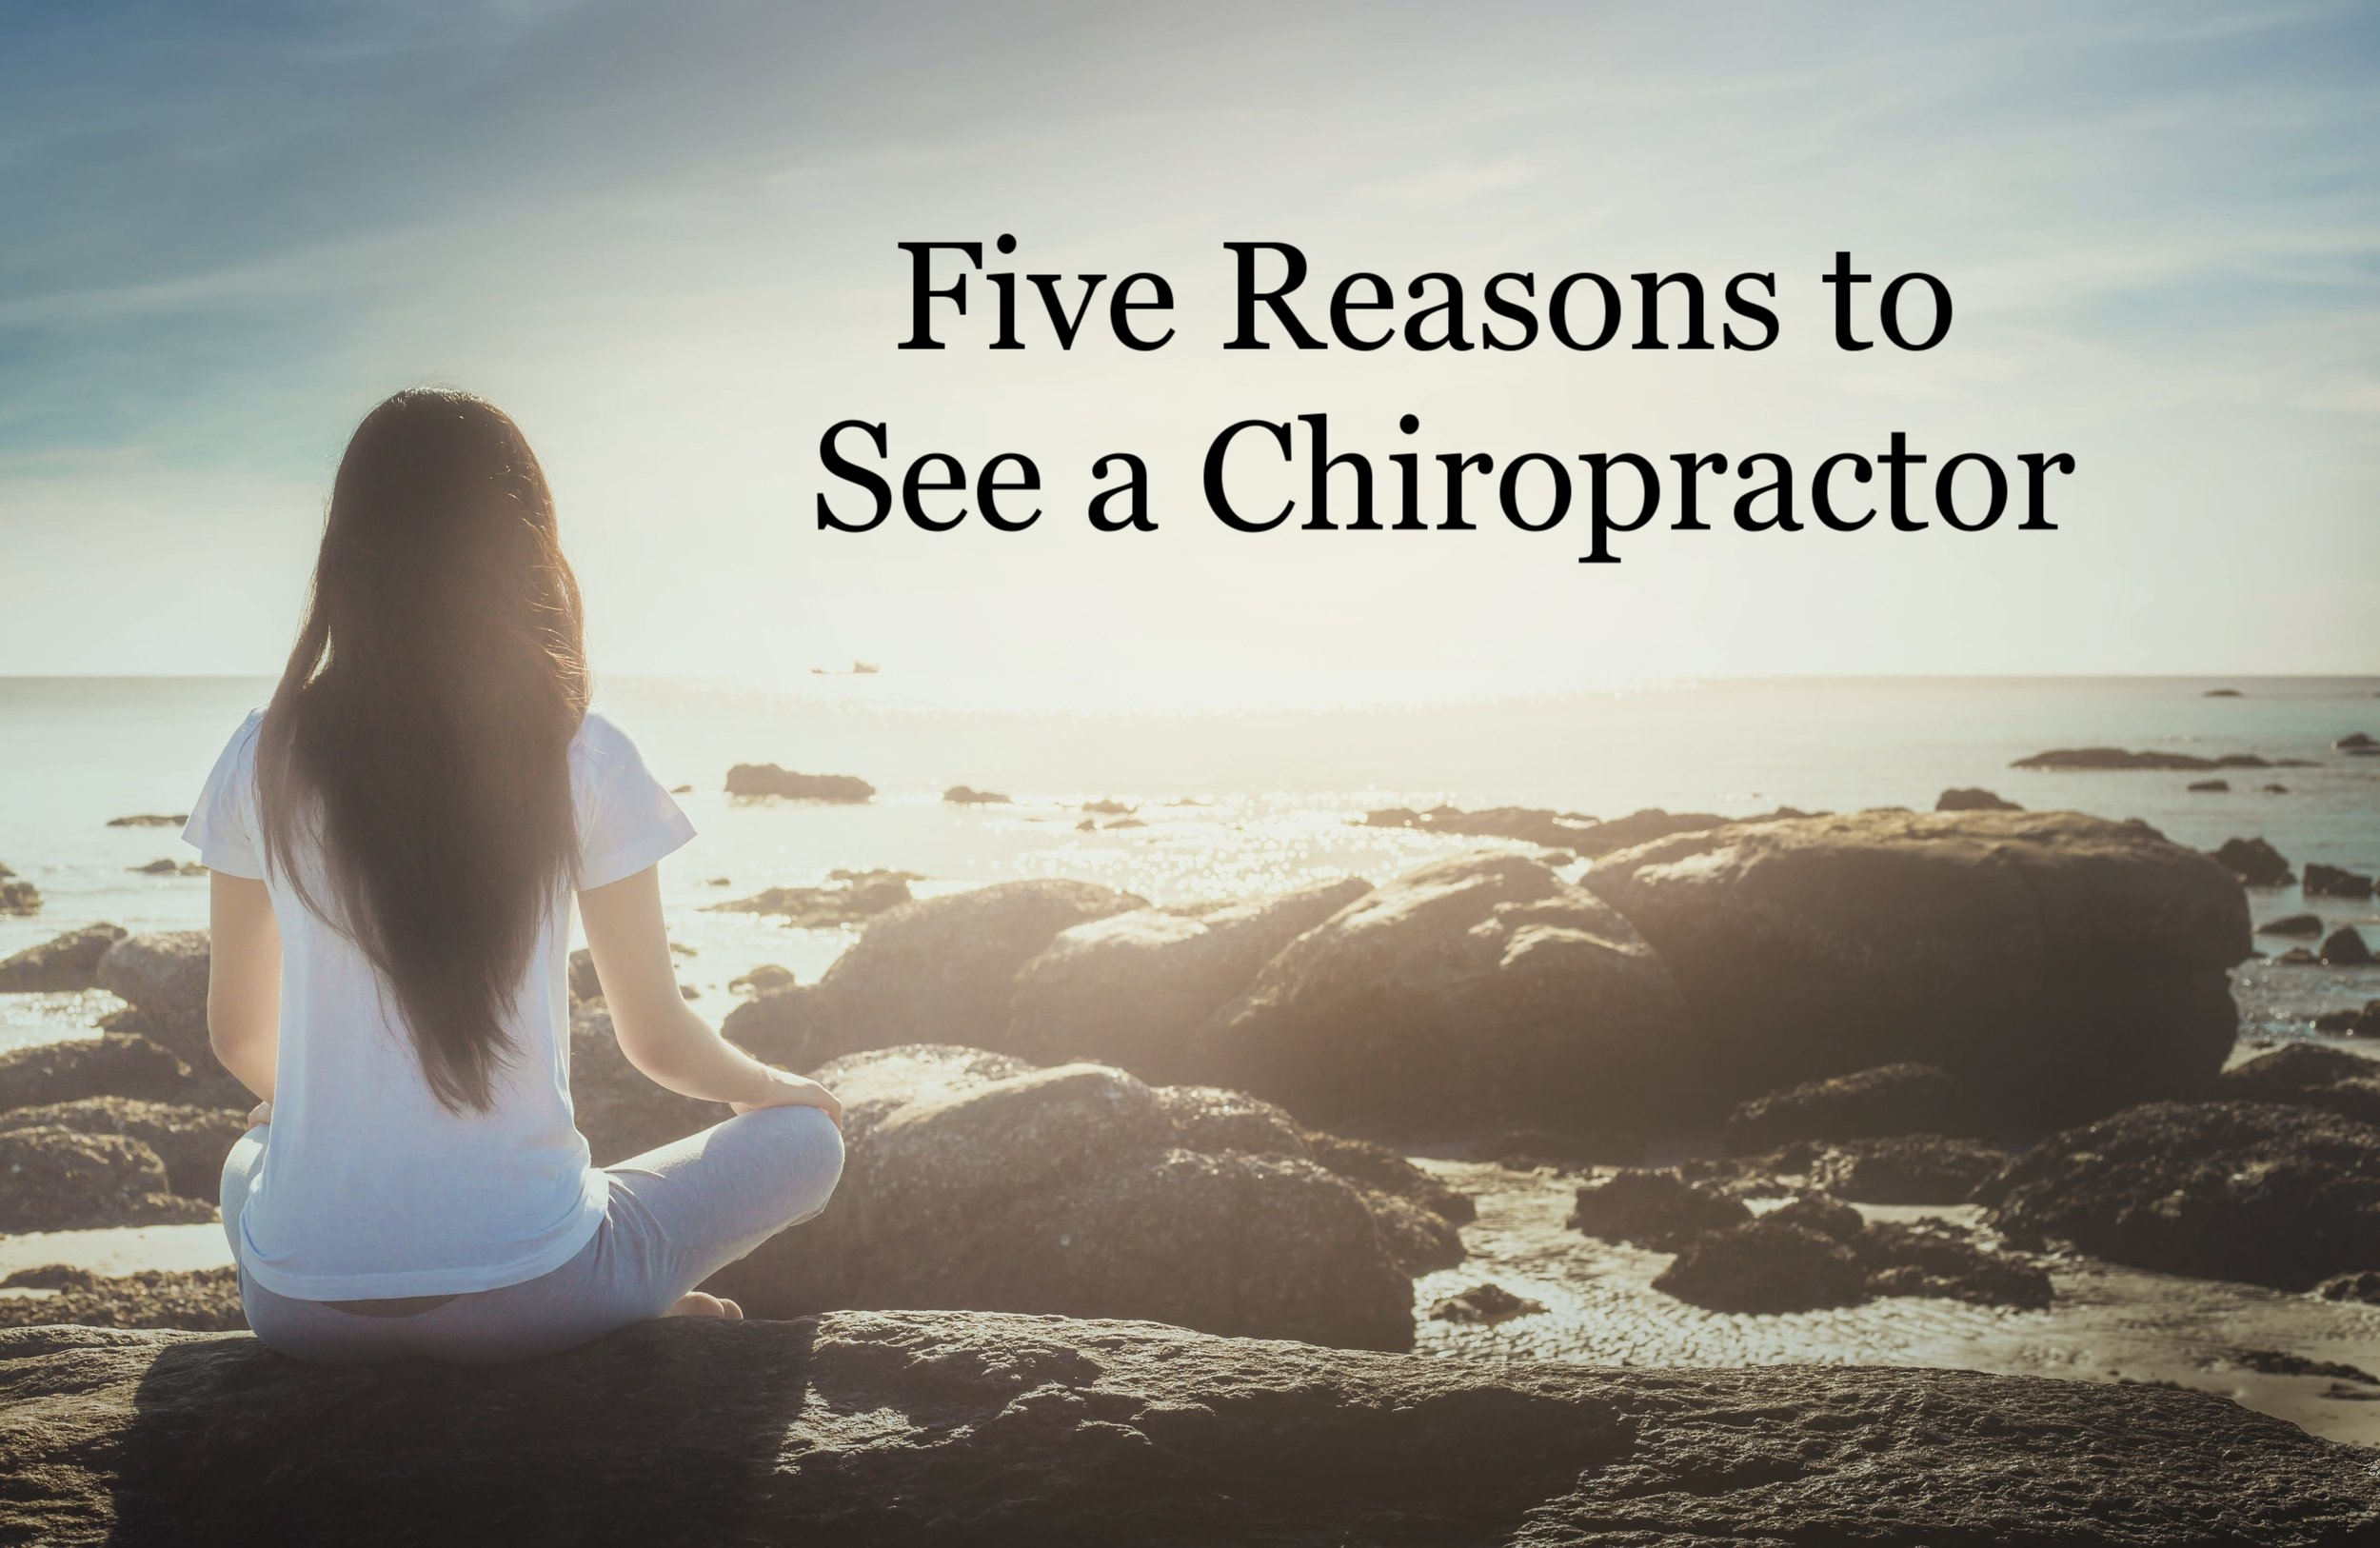 Alternative Health ,  Chiropractor Victoria BC ,  Medical Doctor ,  Medicine Alternatives , Natural Doctors ,  Natural Health ,  Natural Medicine ,  Naturopath Victoria ,  Naturopathic Doctor Victoria BC